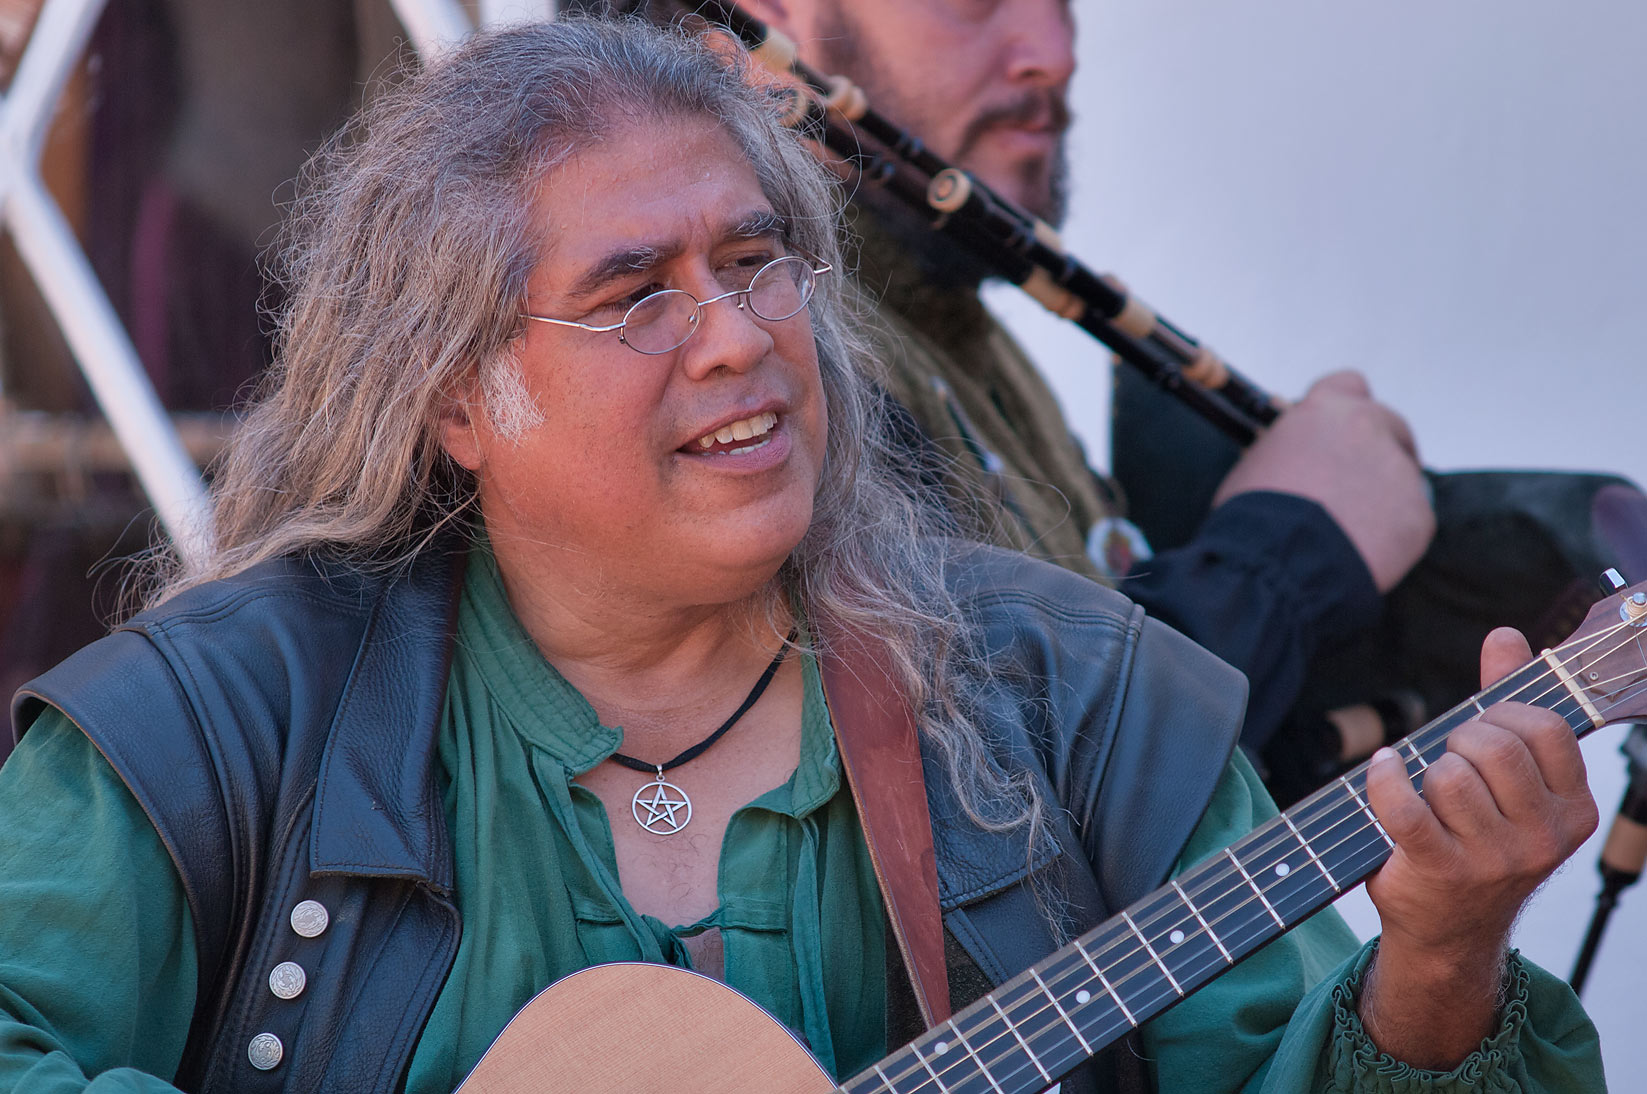 Singer of folk music at Texas Renaissance Festival. Plantersville, Texas